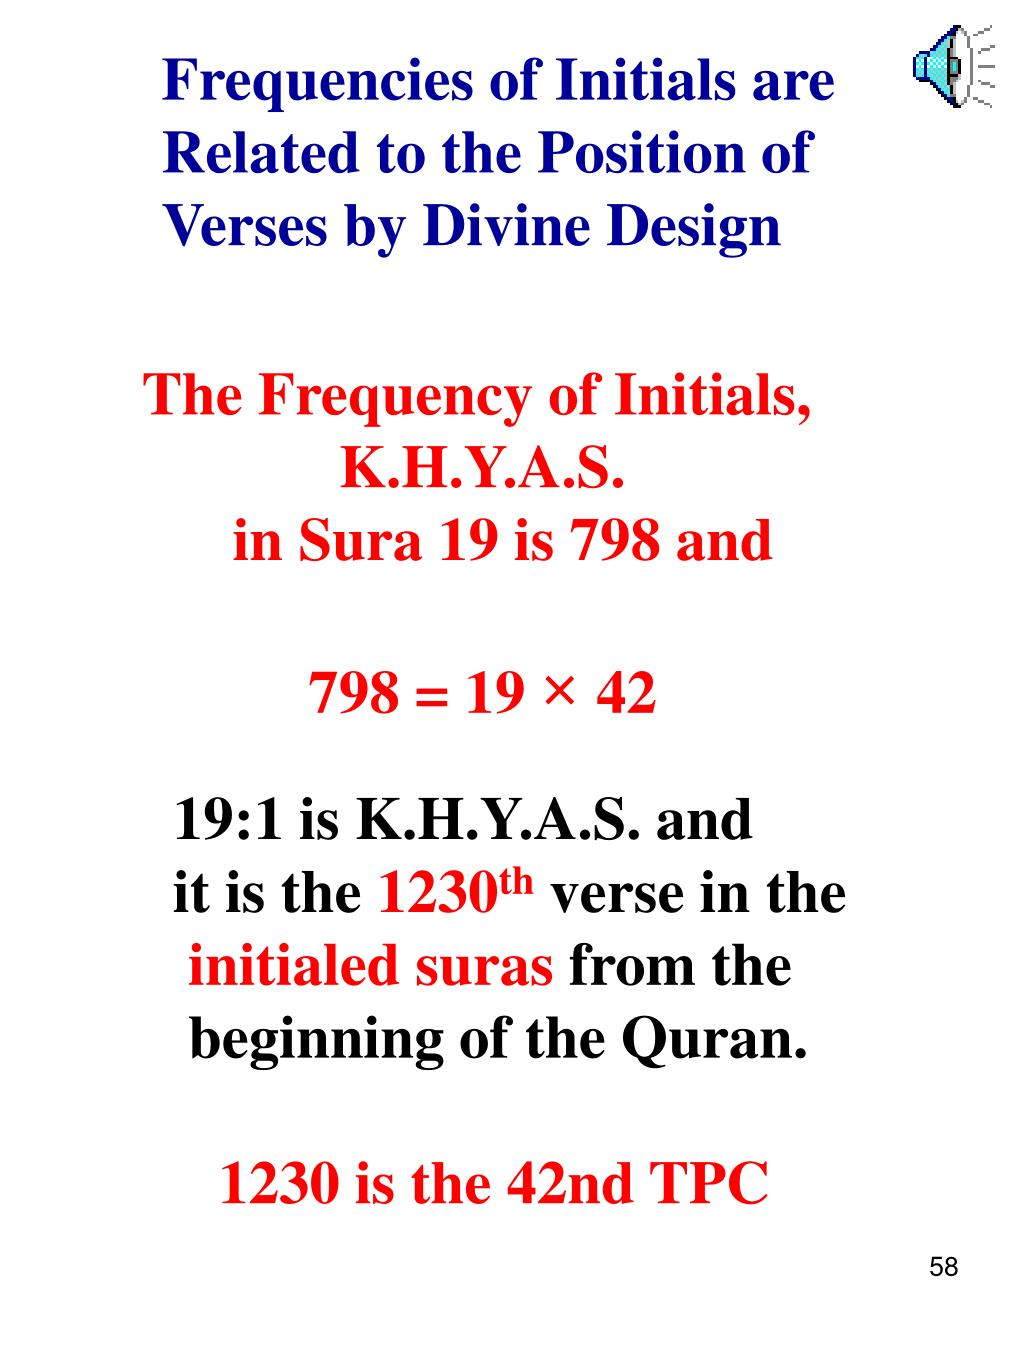 Frequencies of Initials are  Related to the Position of Verses by Divine Design